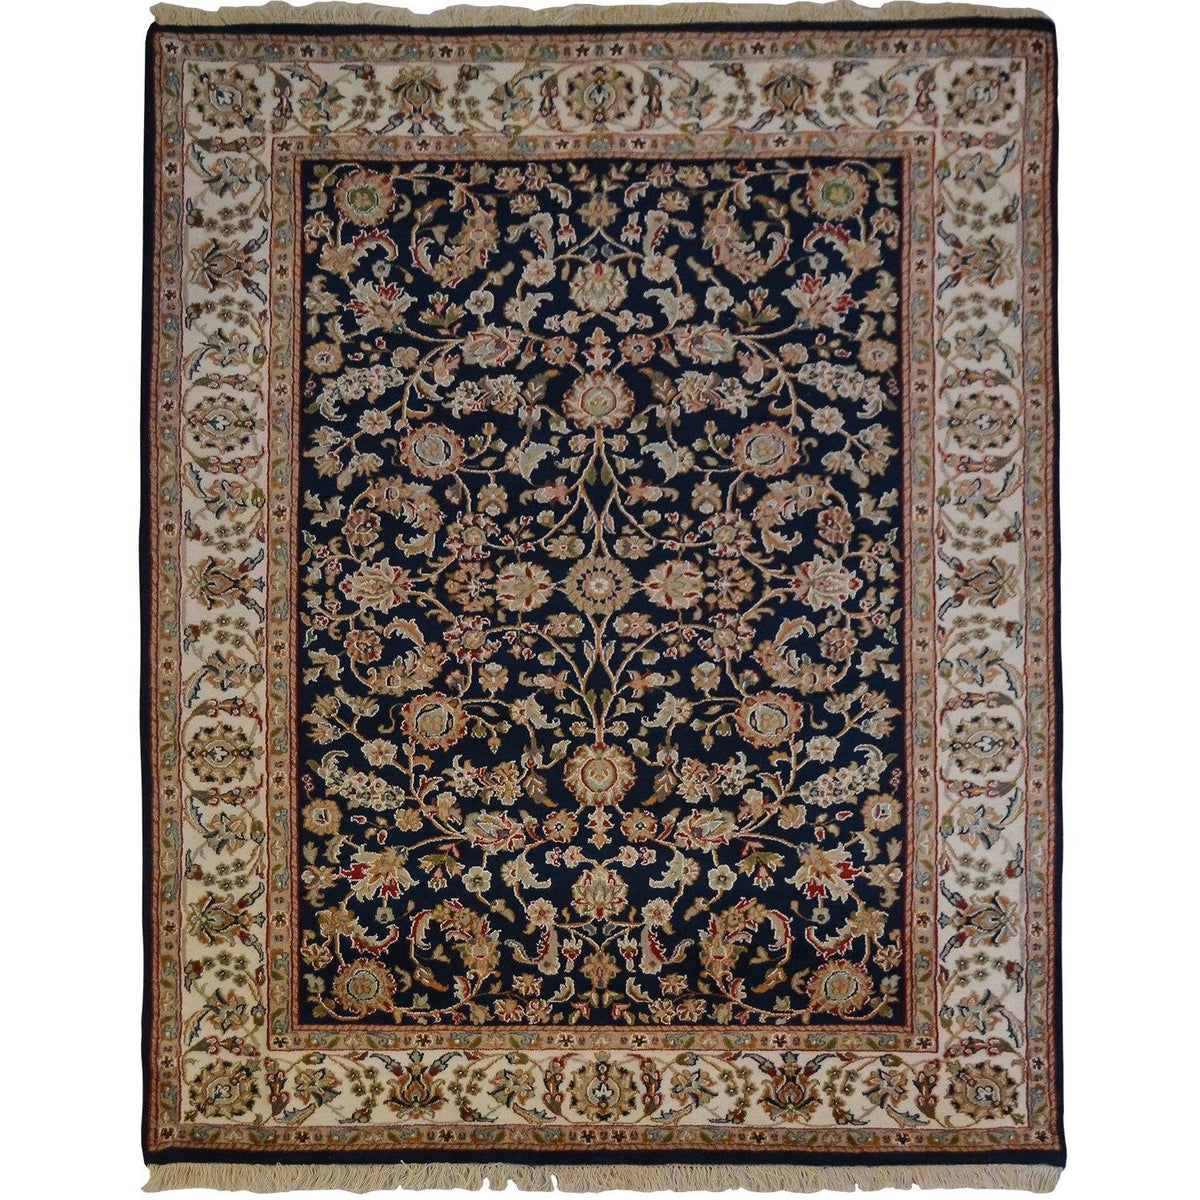 Fine Hand-knotted Wool & Silk Nain Rug 142cm x 203cm